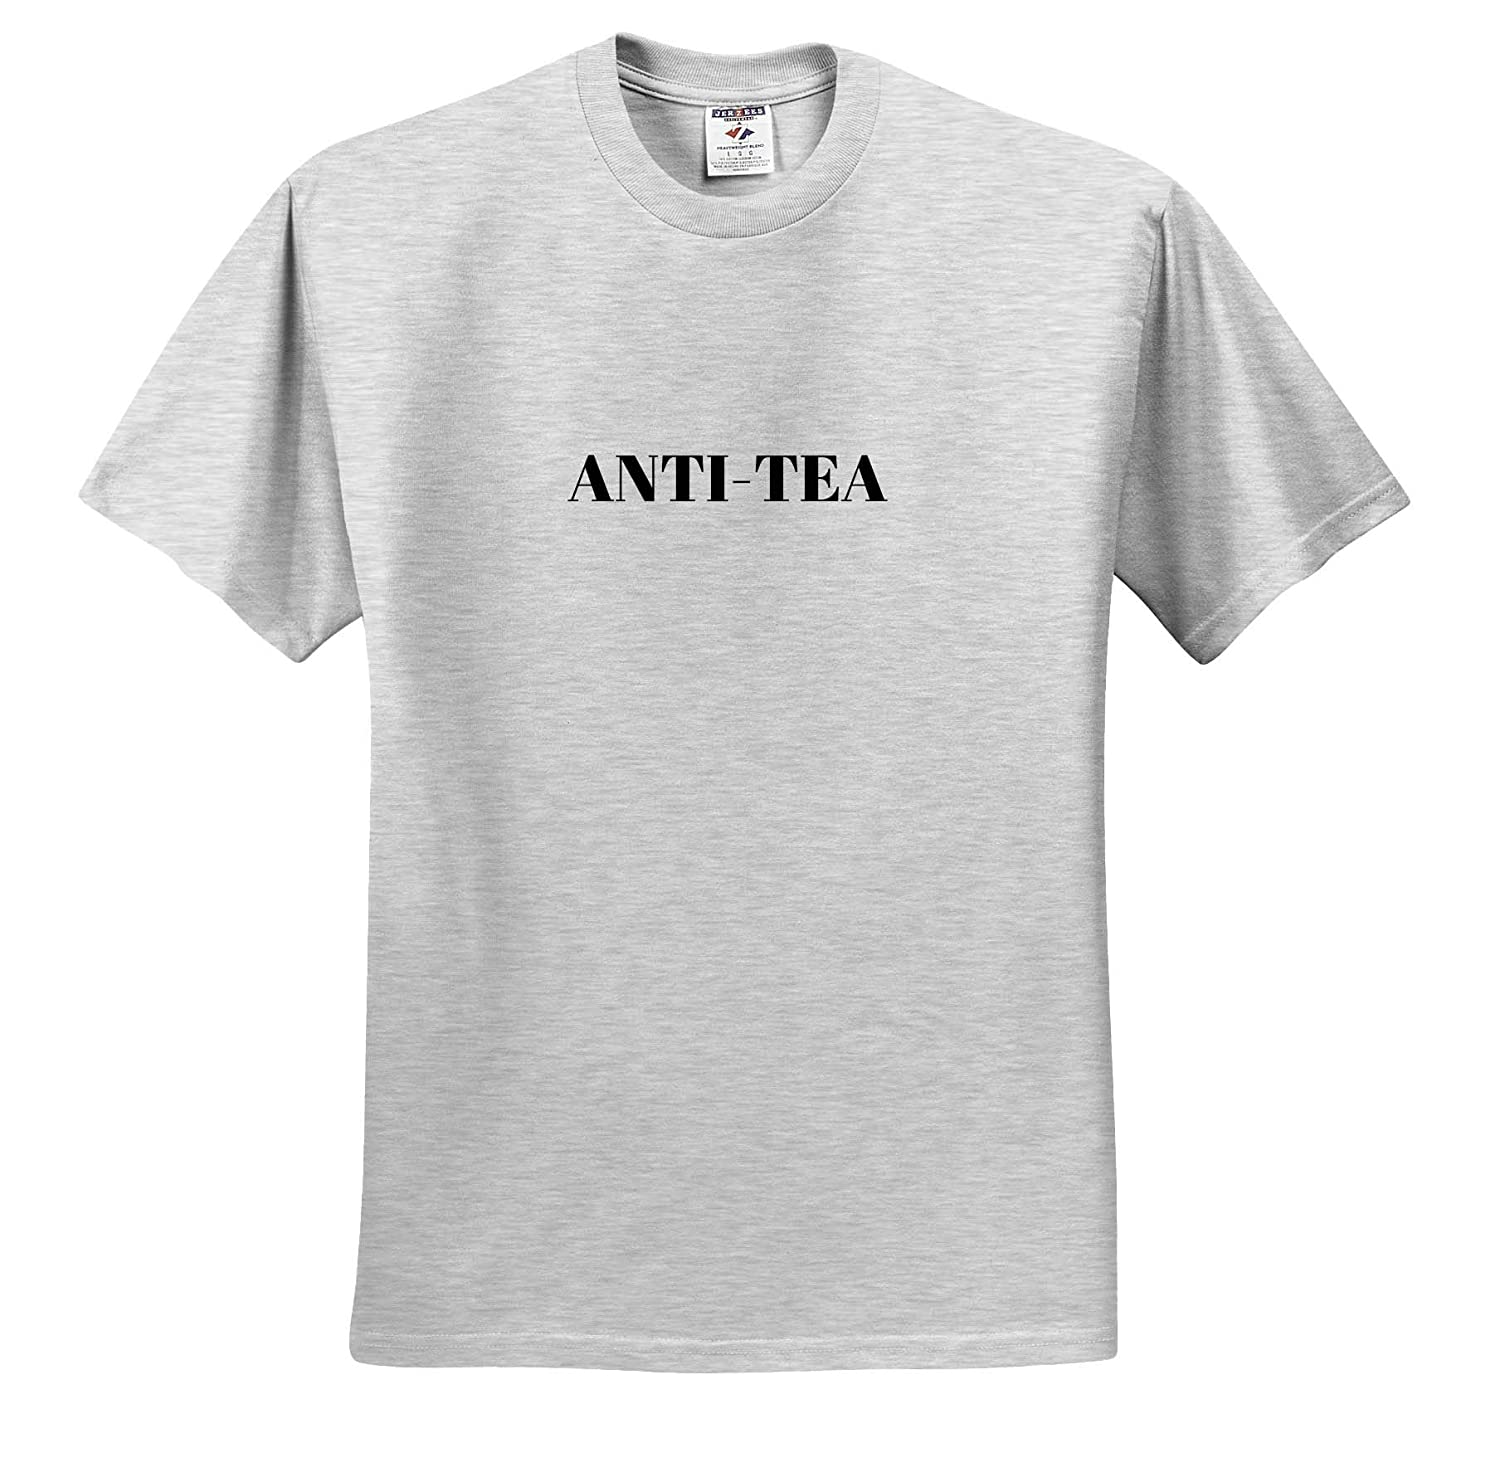 ts/_317860 3dRose Gabriella-Quote Adult T-Shirt XL Image of Anti-Tea Quote